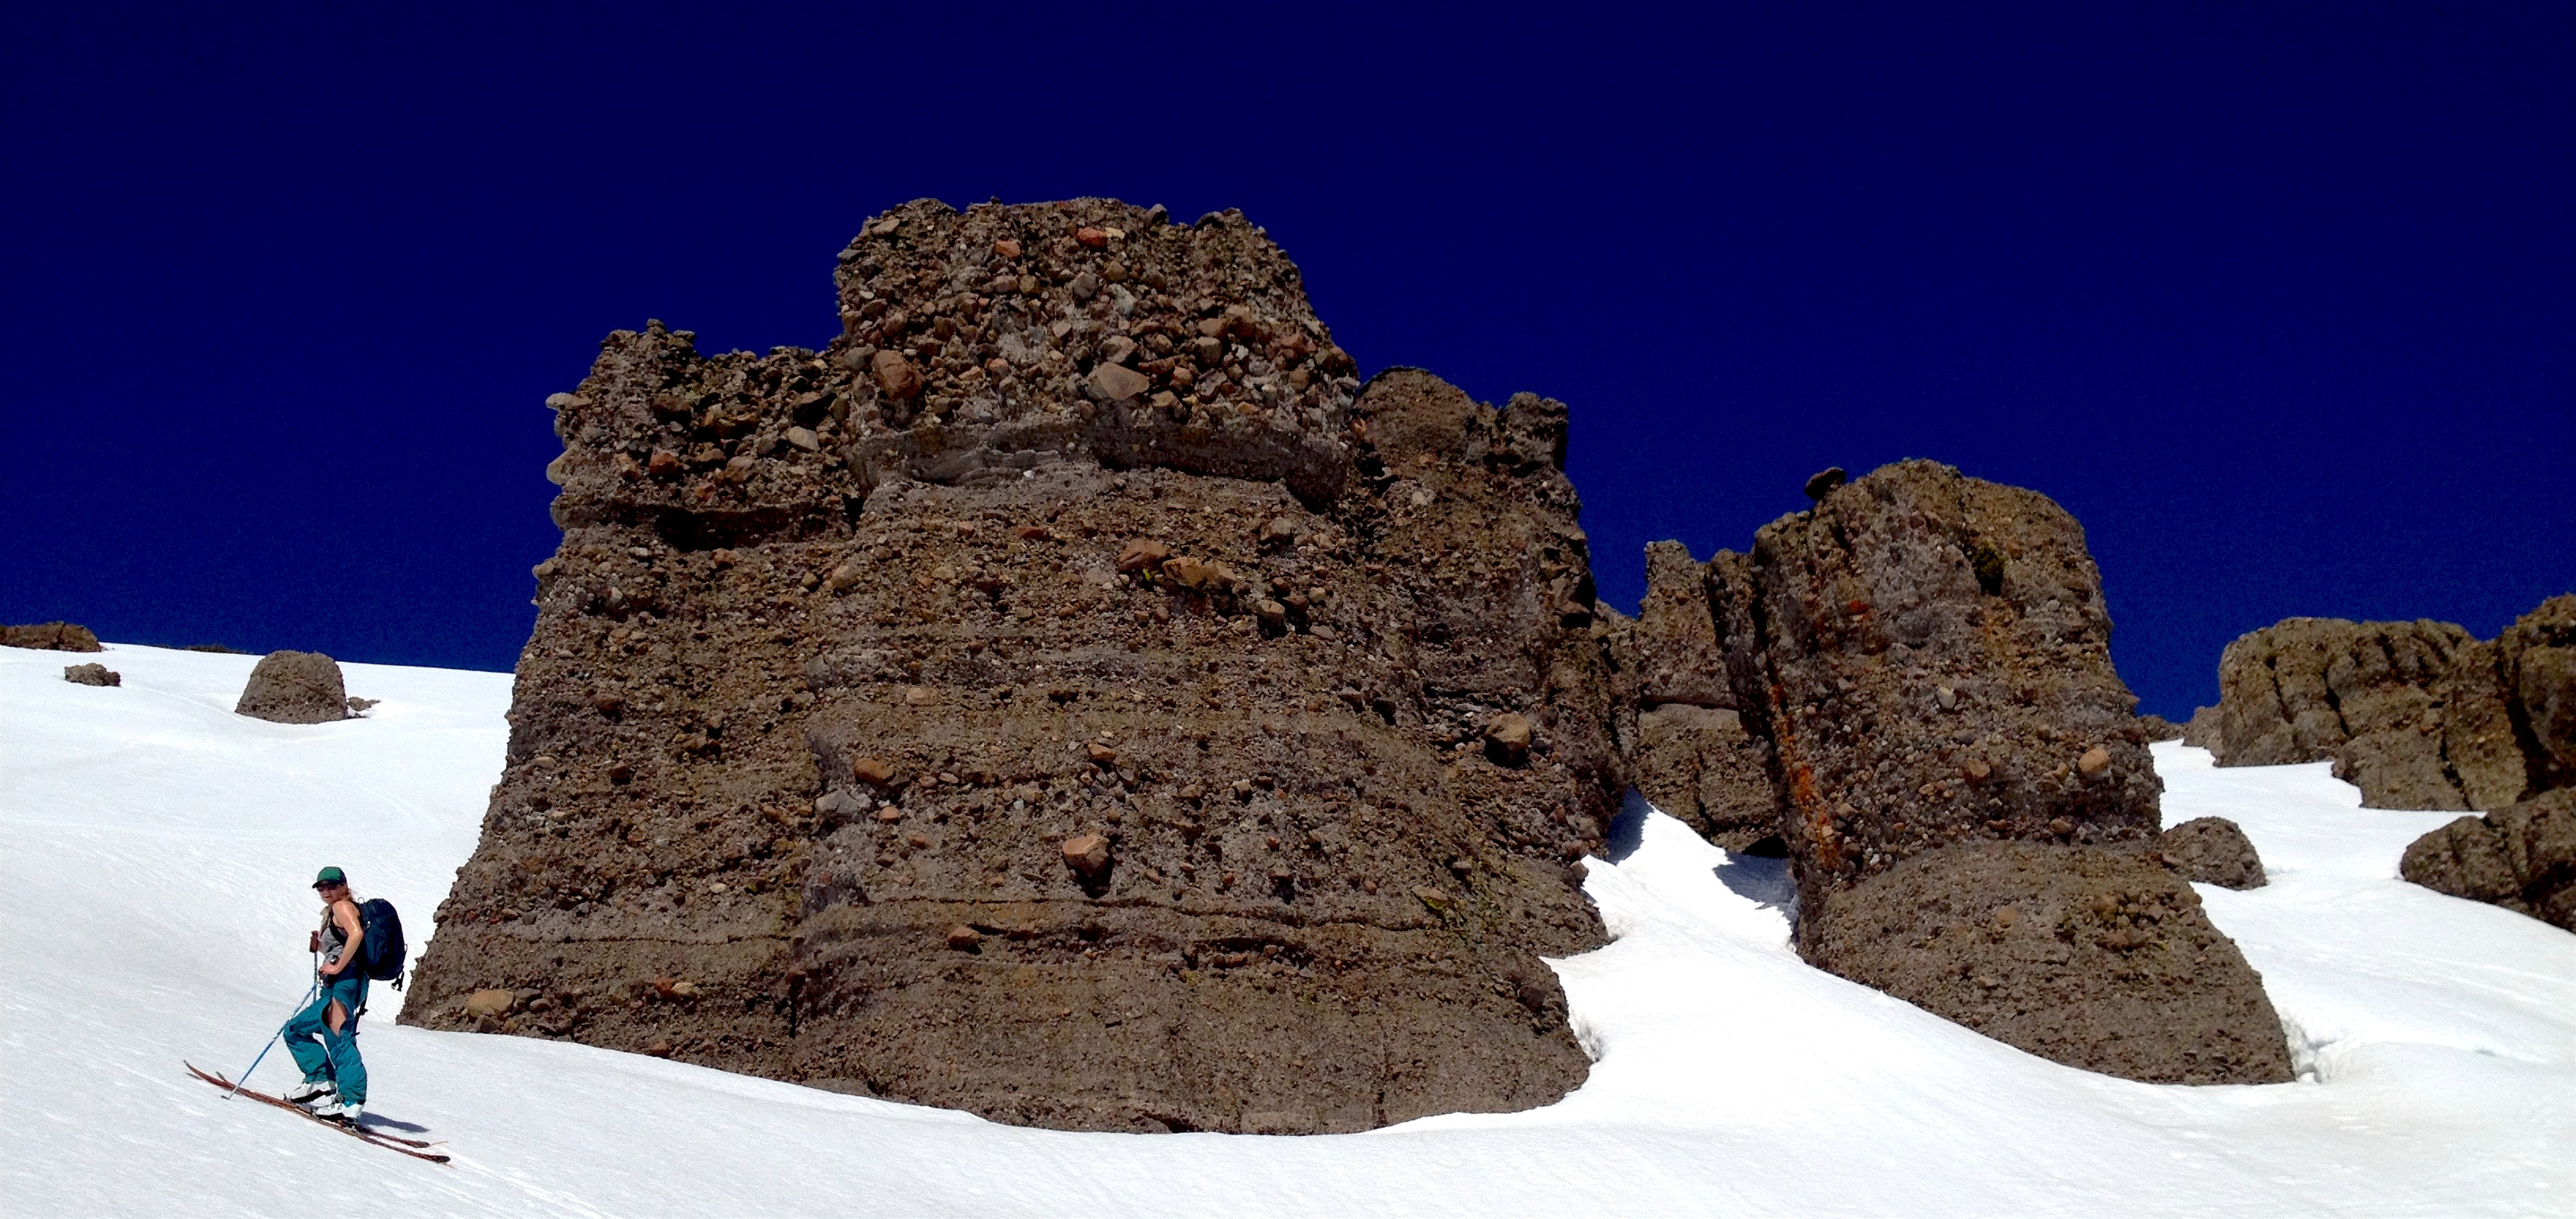 Katy and bizarre rock formations today. photo: miles clark/snowbrains